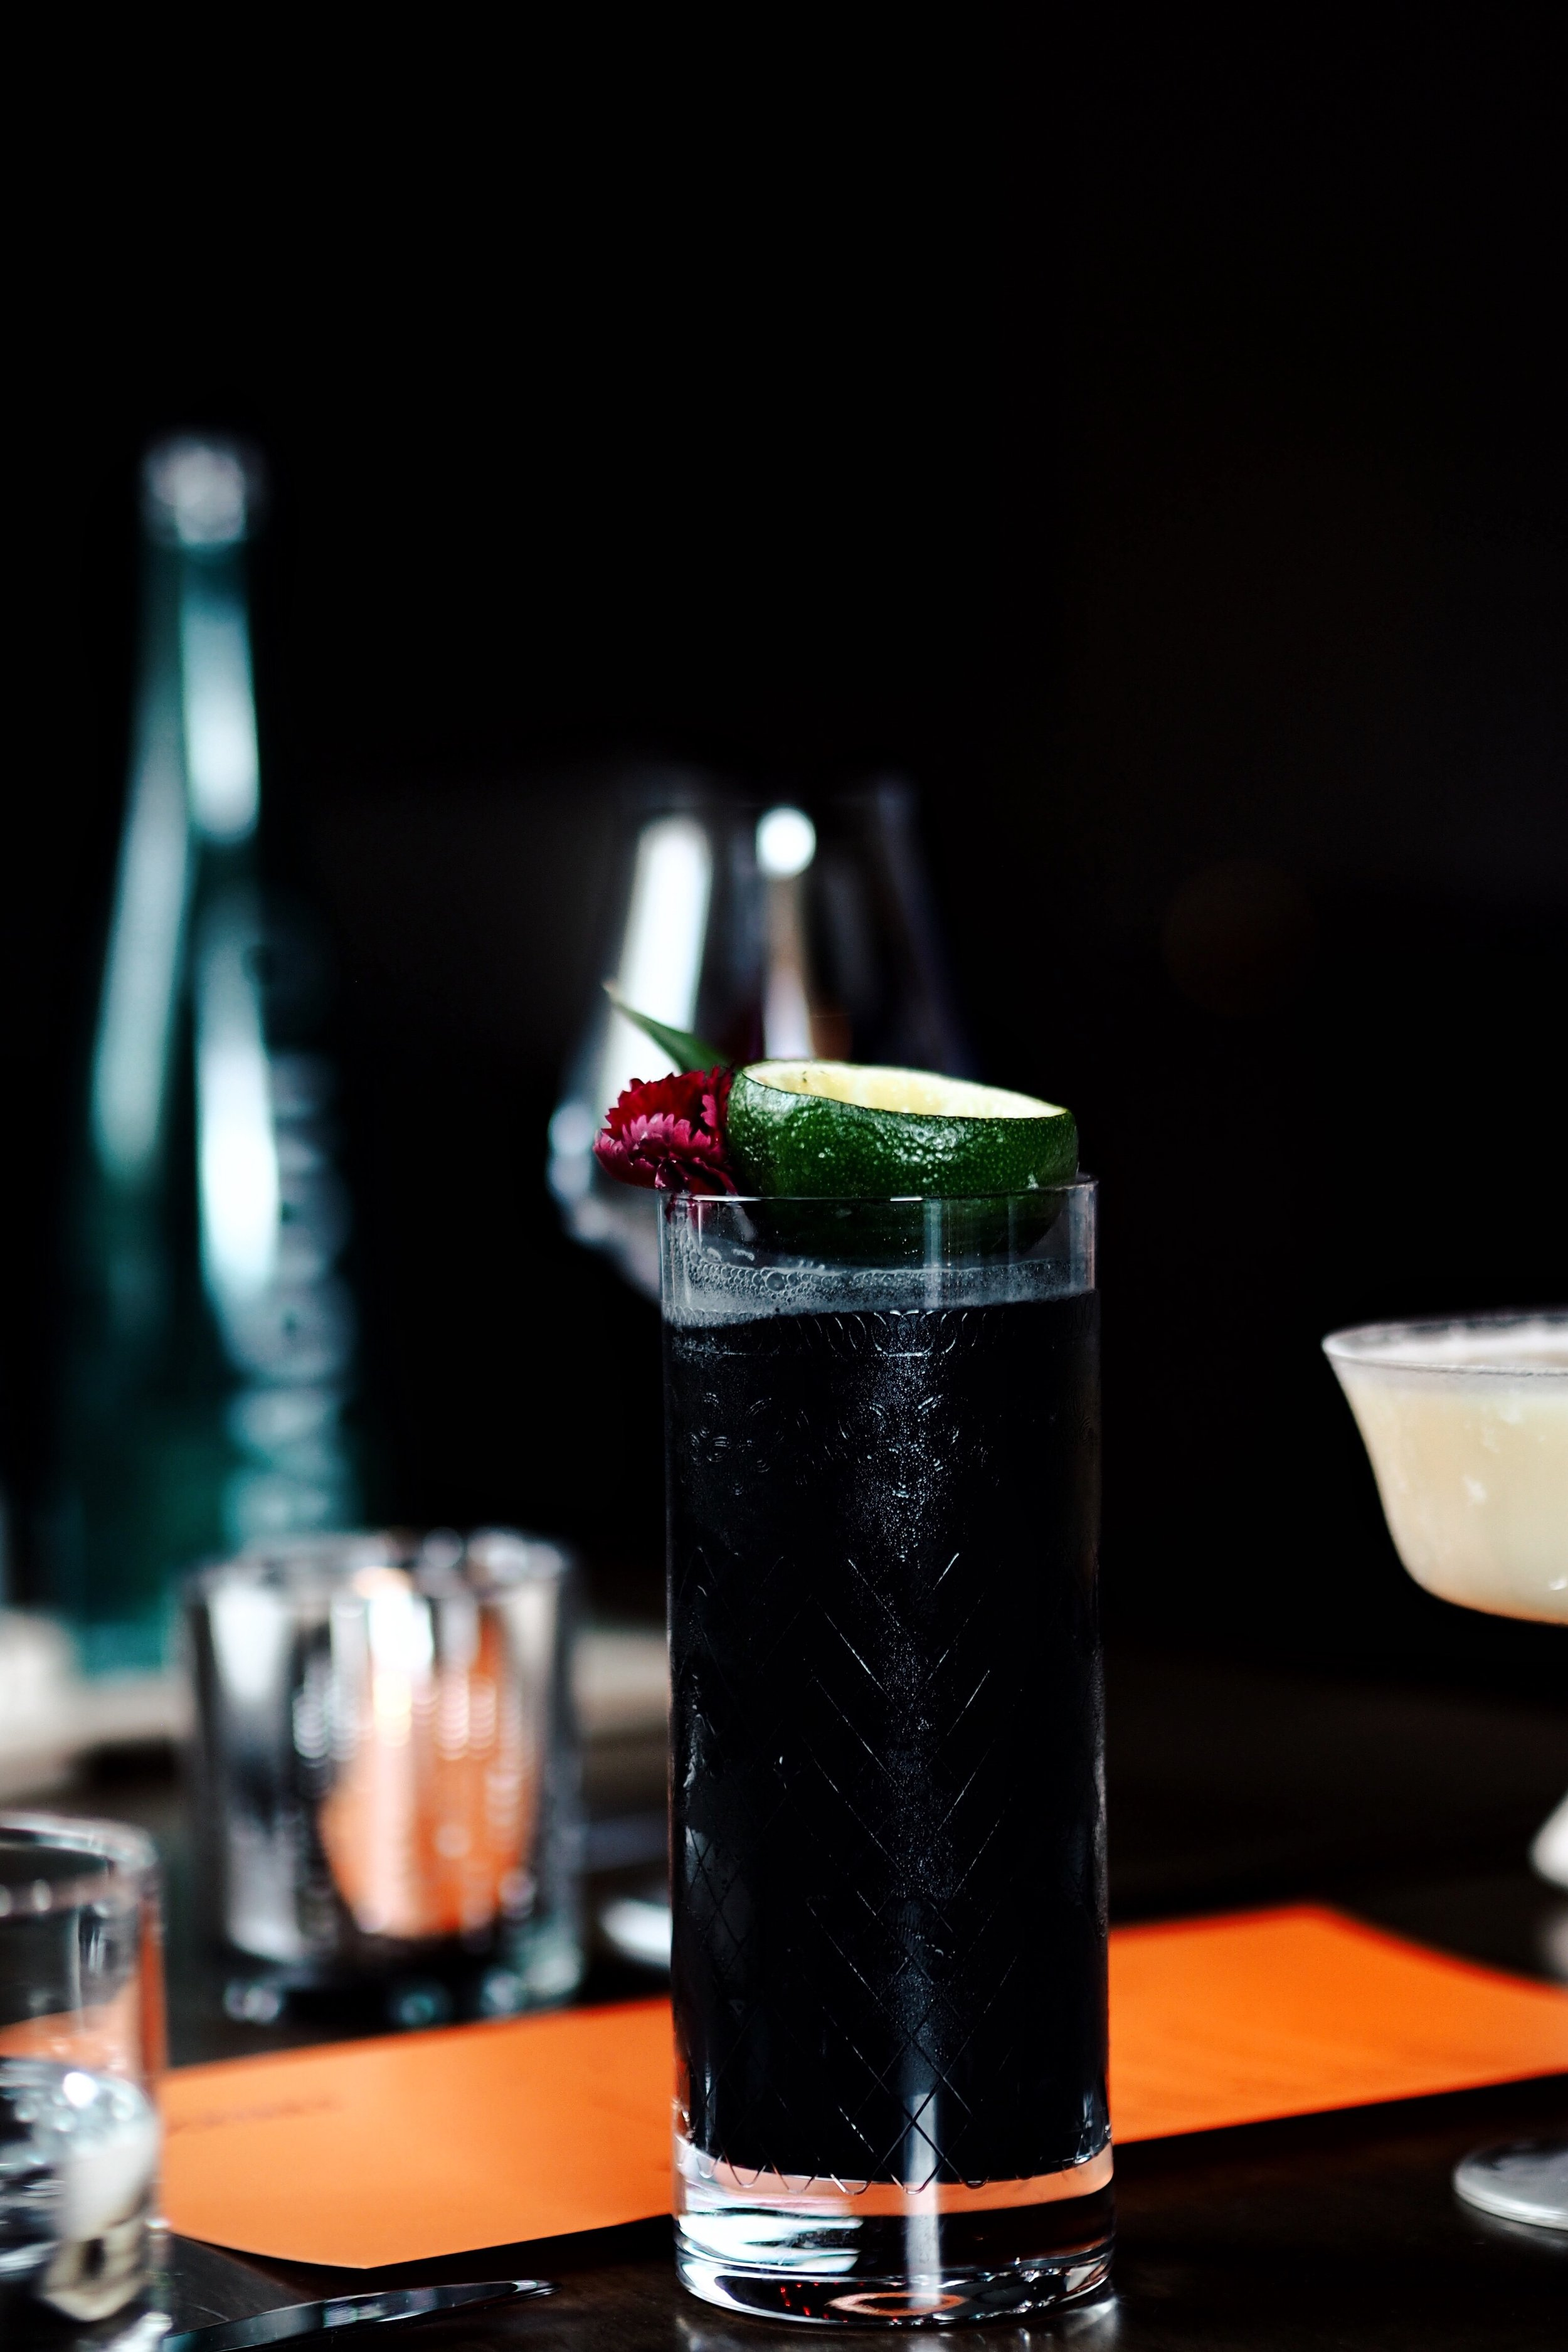 Maleficent :   J.P. Wiser's Double Still Rye, Bruchladdich 'Classic Laddie' ,Pineapple Juice, Lime Juice, Cashew Orgeat, Fresh Sage, Activated Charcoal, Angostura Bitters ($19.00 + tax)